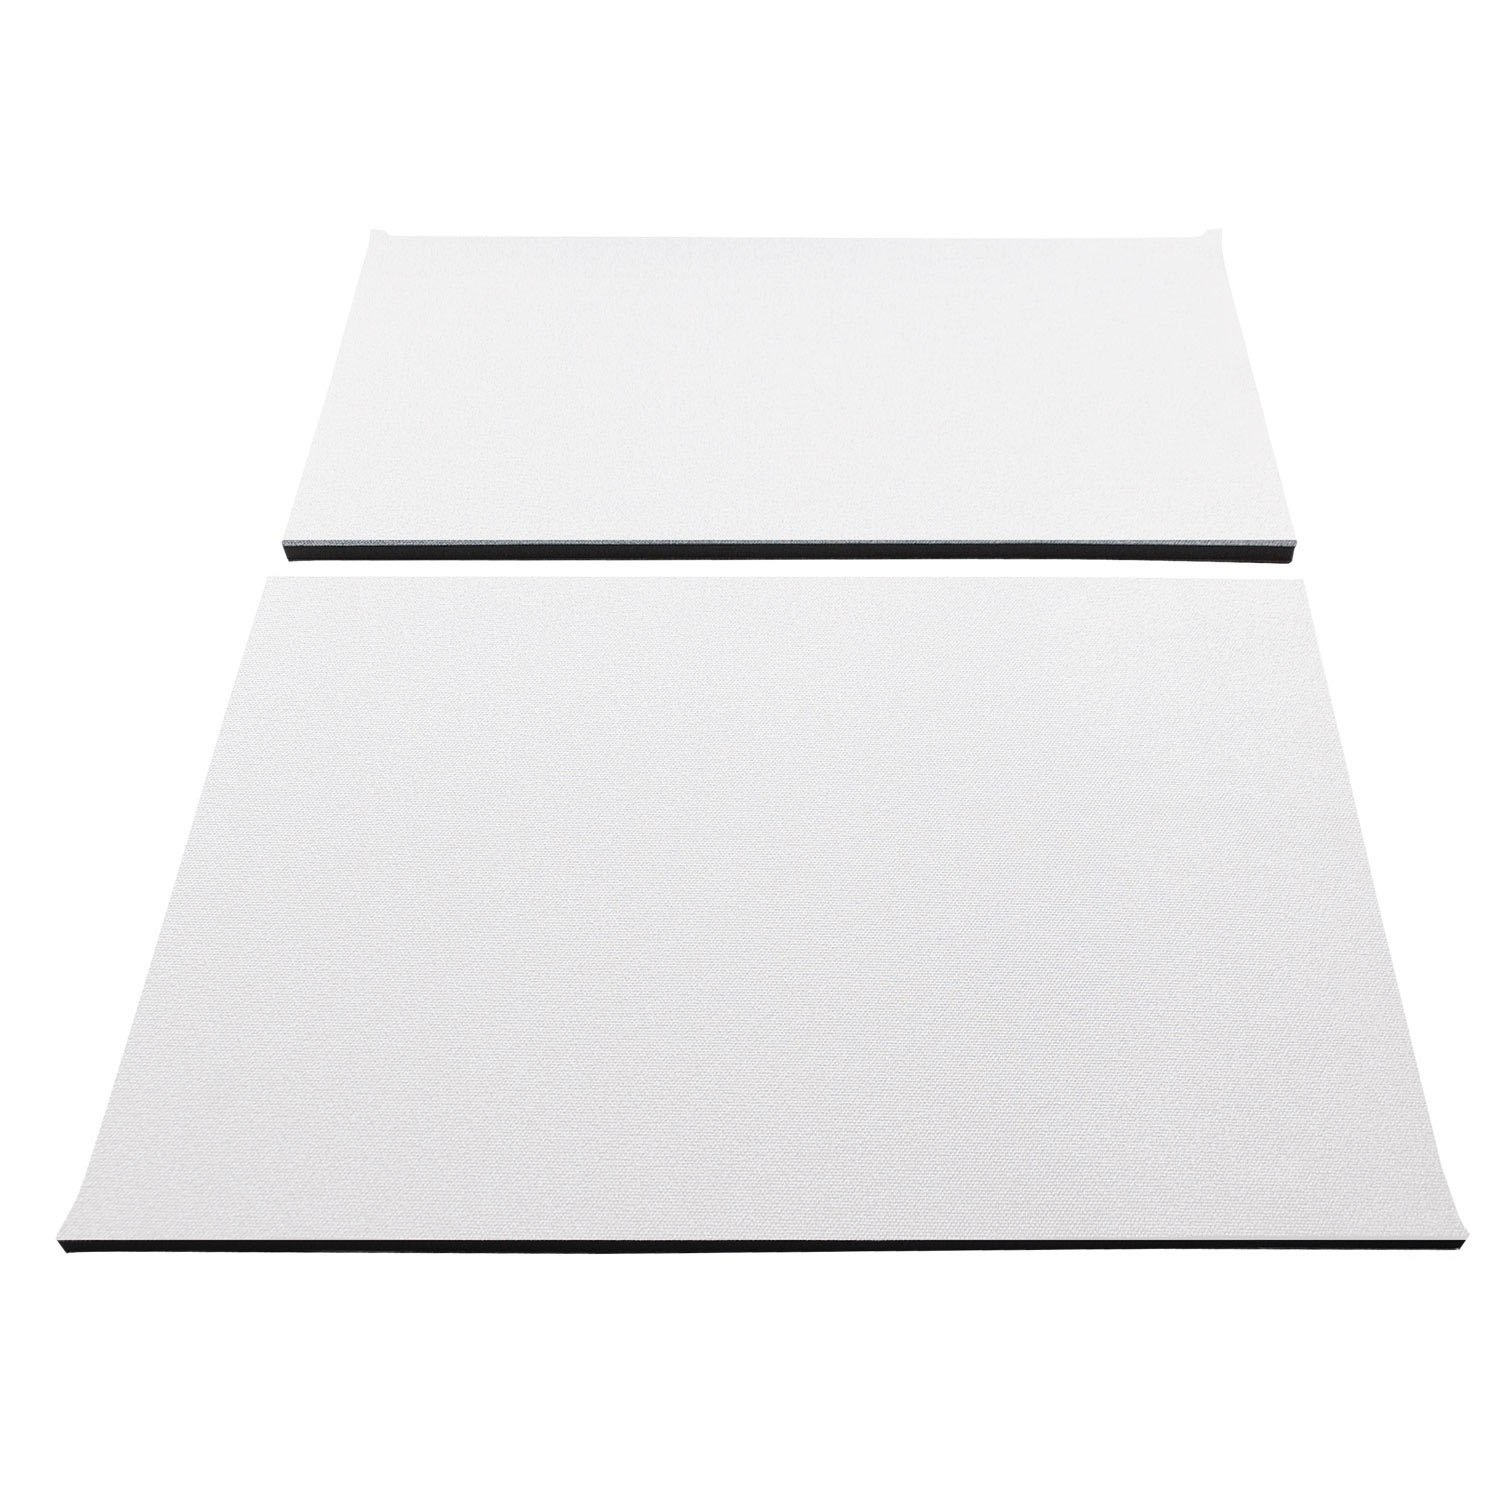 - White Design Engineering 050145 Boom Mat Sound Deadening Headliner for Jeep Wrangler with Factory Sound Bar 1997-2006 1997-2002 and TJ without Roll Bar Speakers